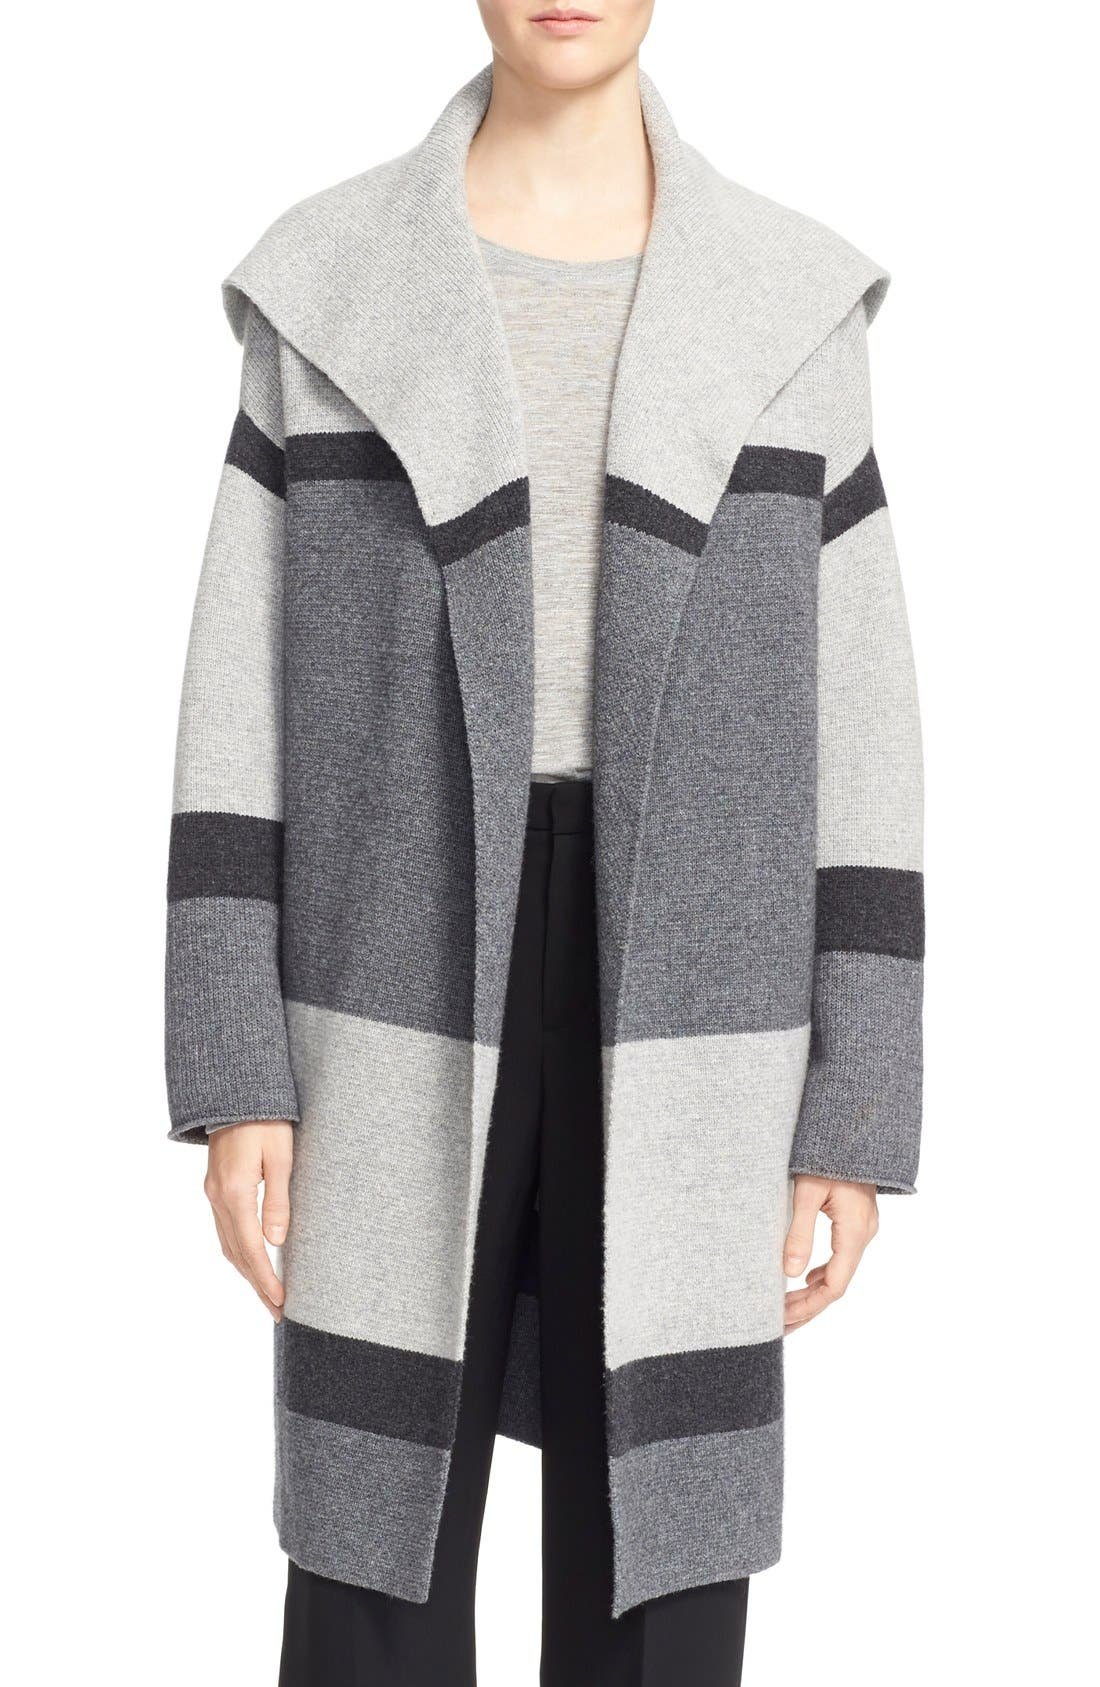 Colorblock Wool & Cashmere Knit Car Coat,                         Main,                         color, Heather Steal/ Stone/ Carbon